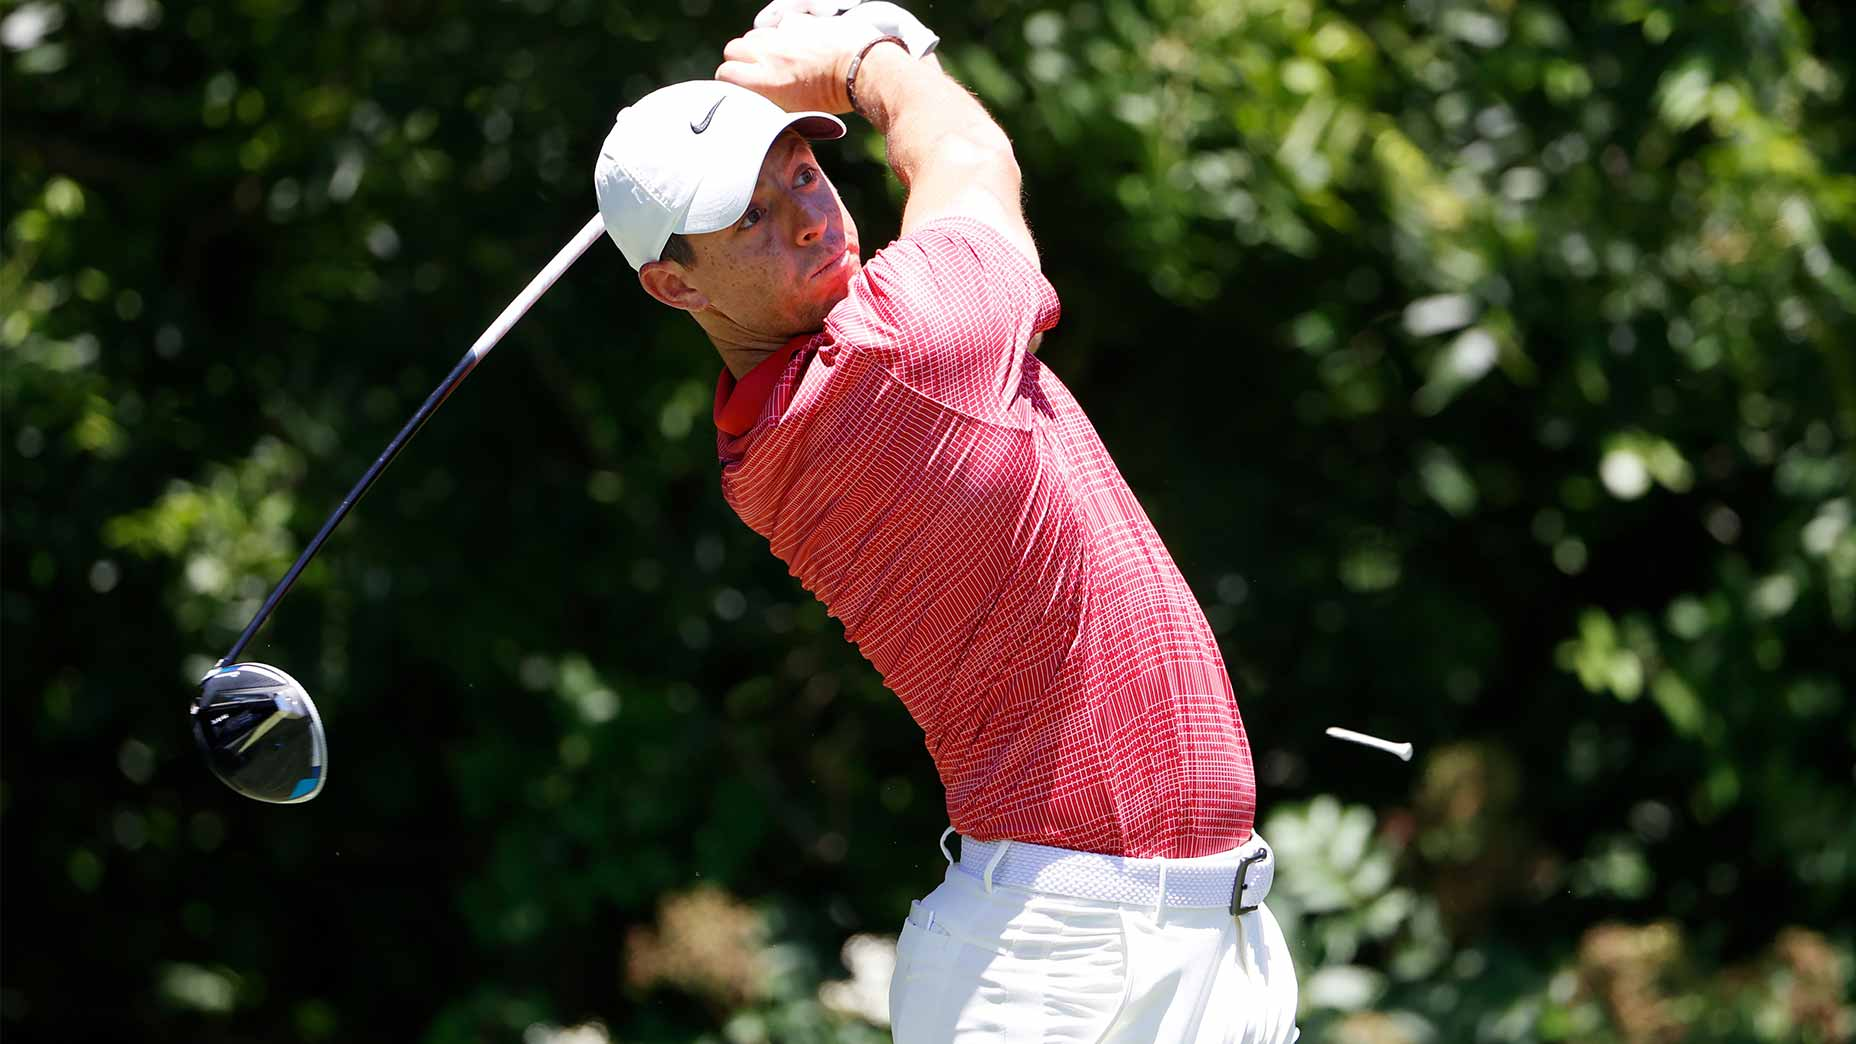 Rory McIlroy swings his driver.